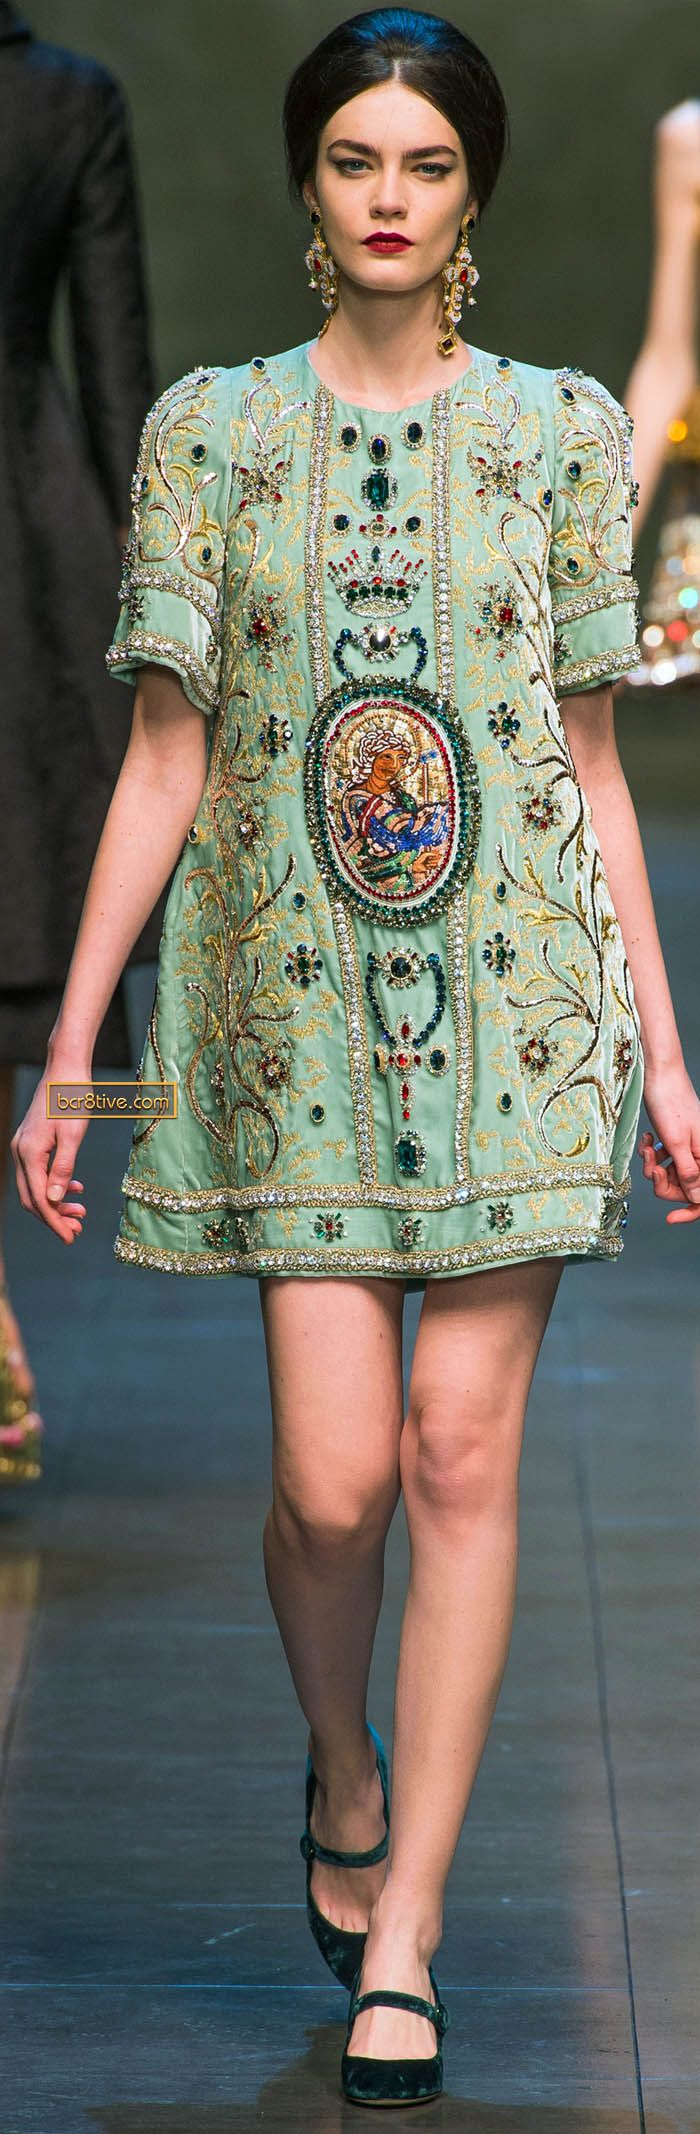 This dress could look so nice in summer with flats